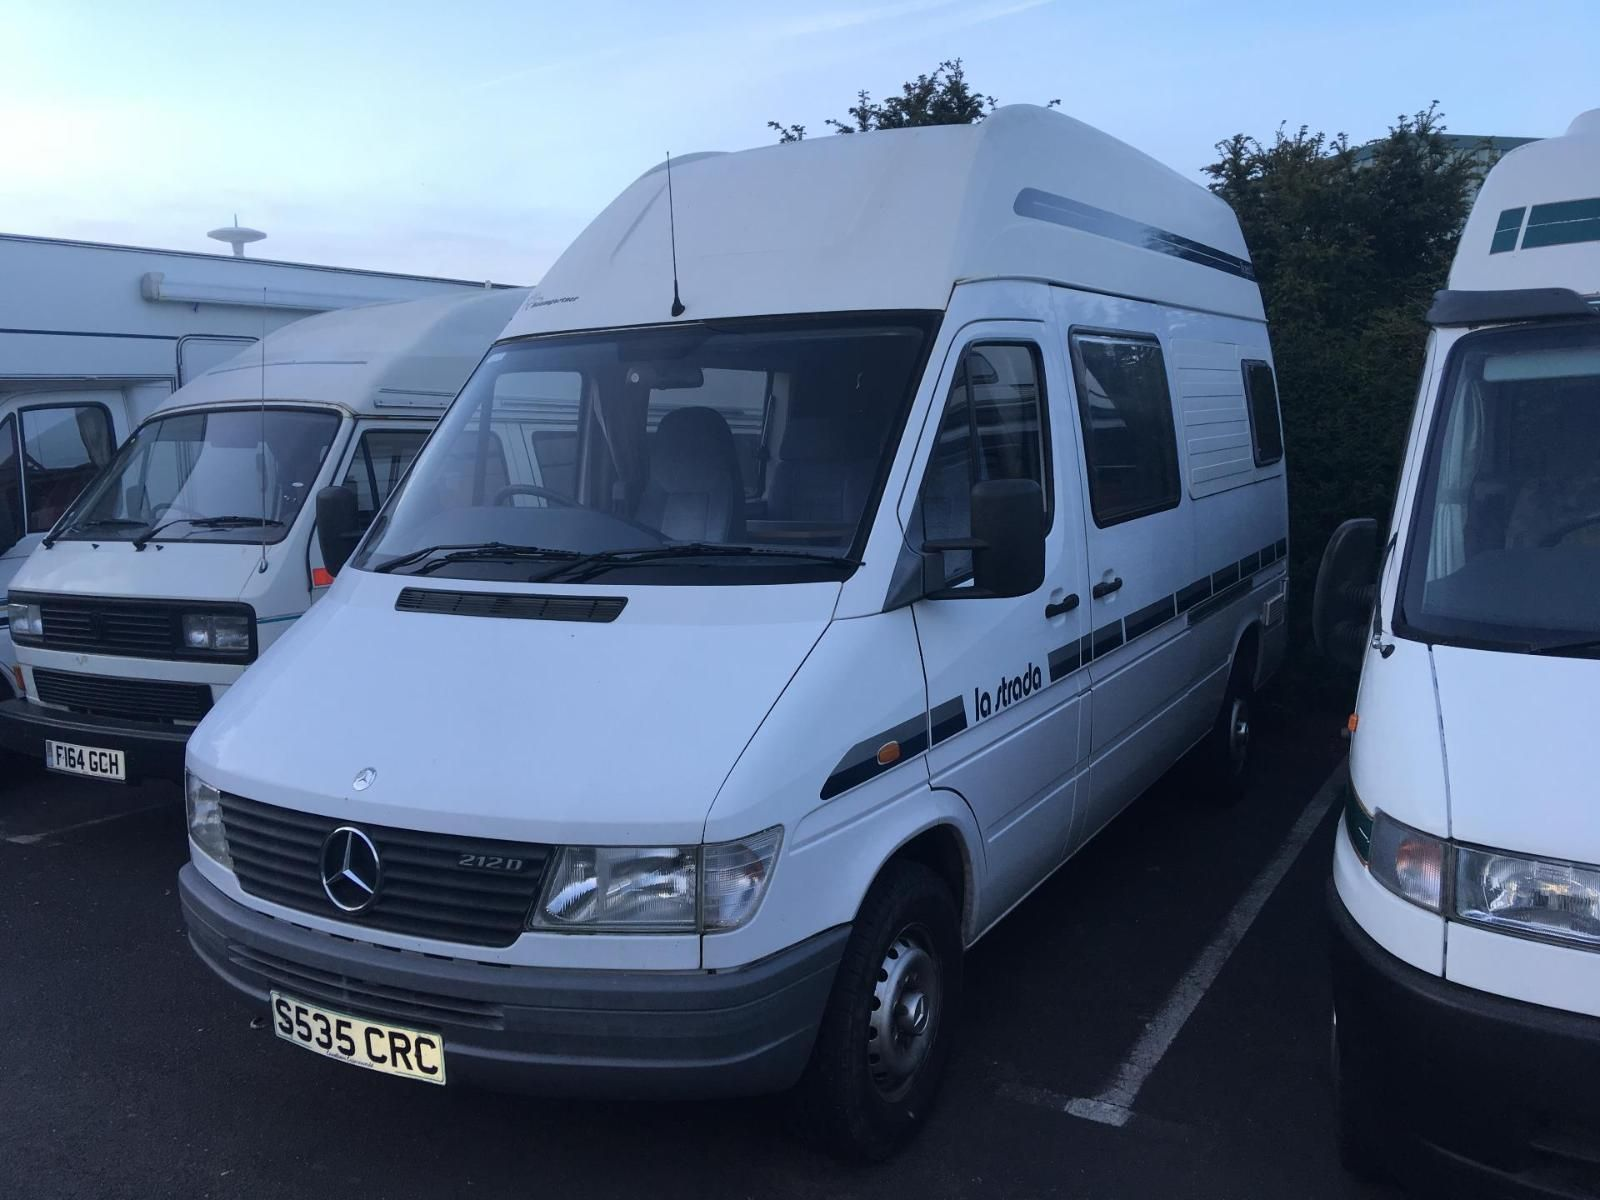 1998 LA STRADA REGENT MERCEDES BENZ SPRINTER 212D 2.9 MANUAL | eBay